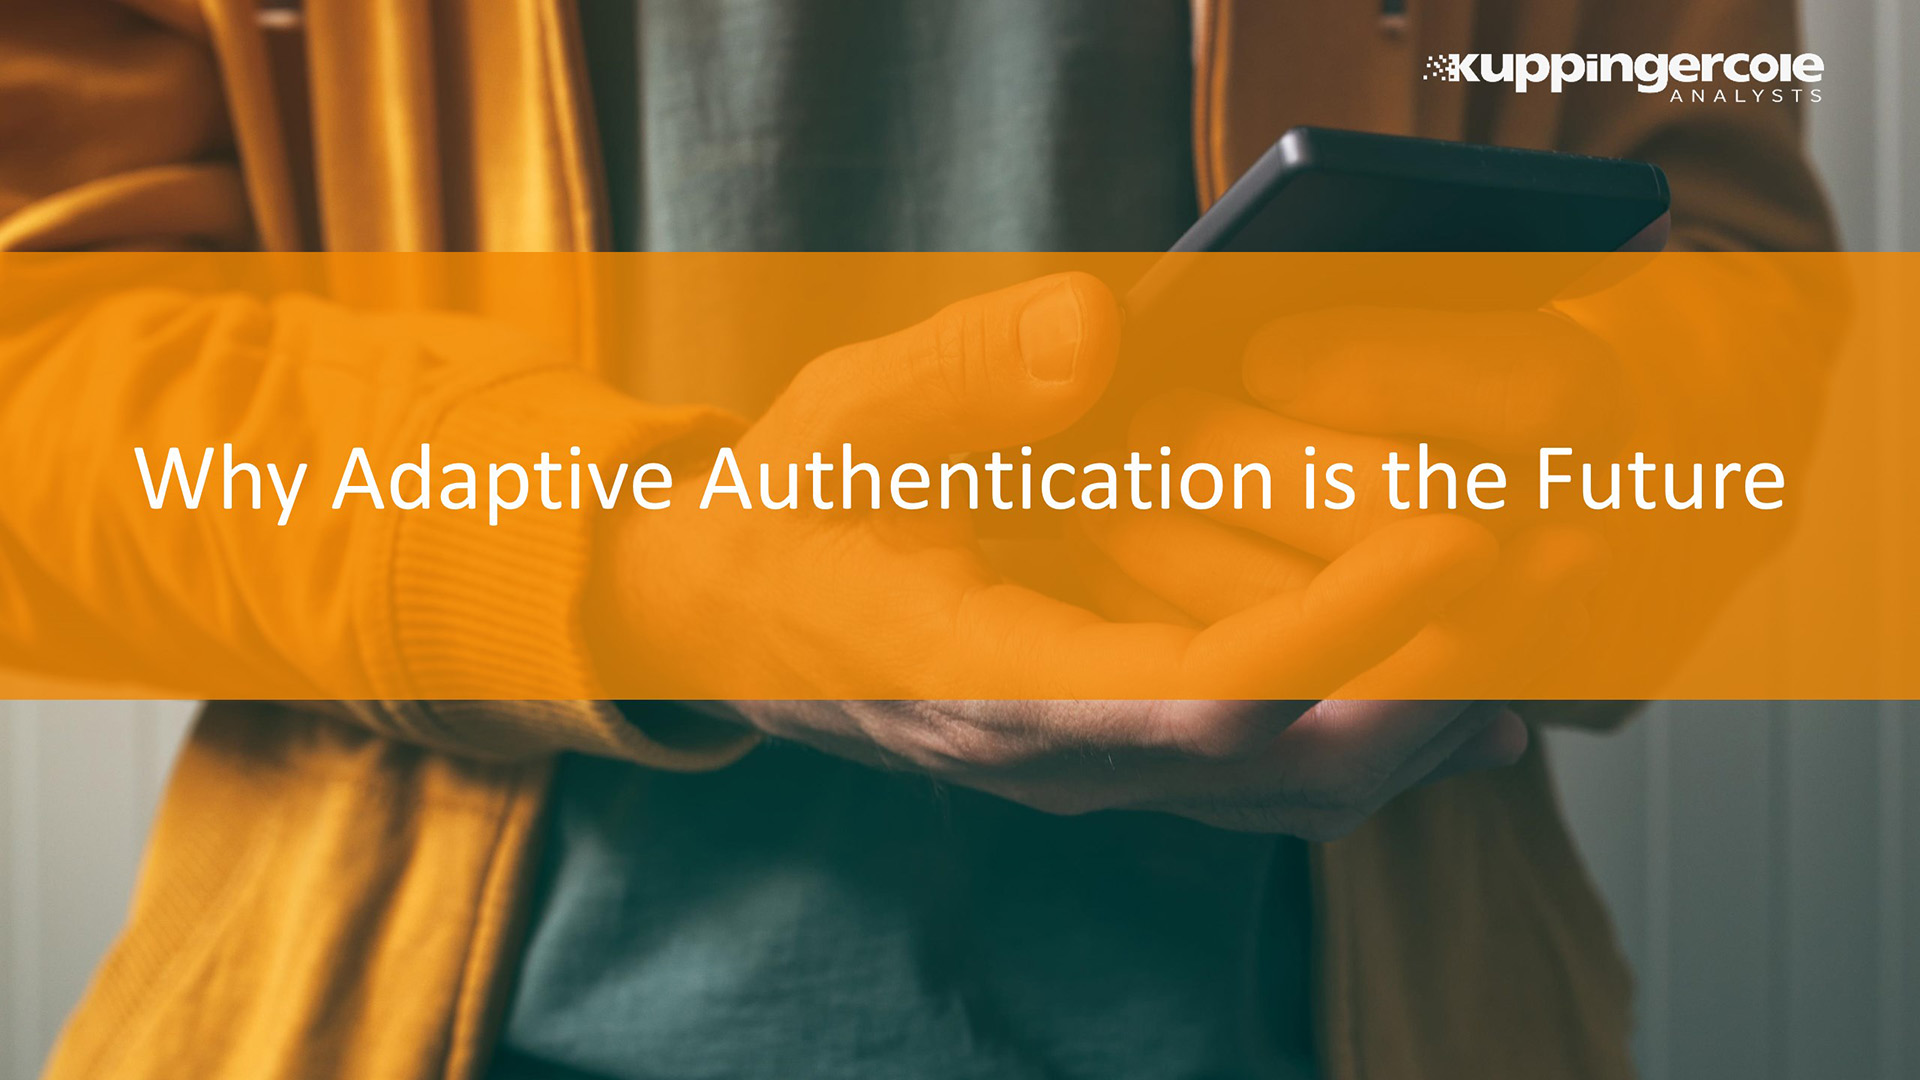 Why Adaptive Authentication is the Future